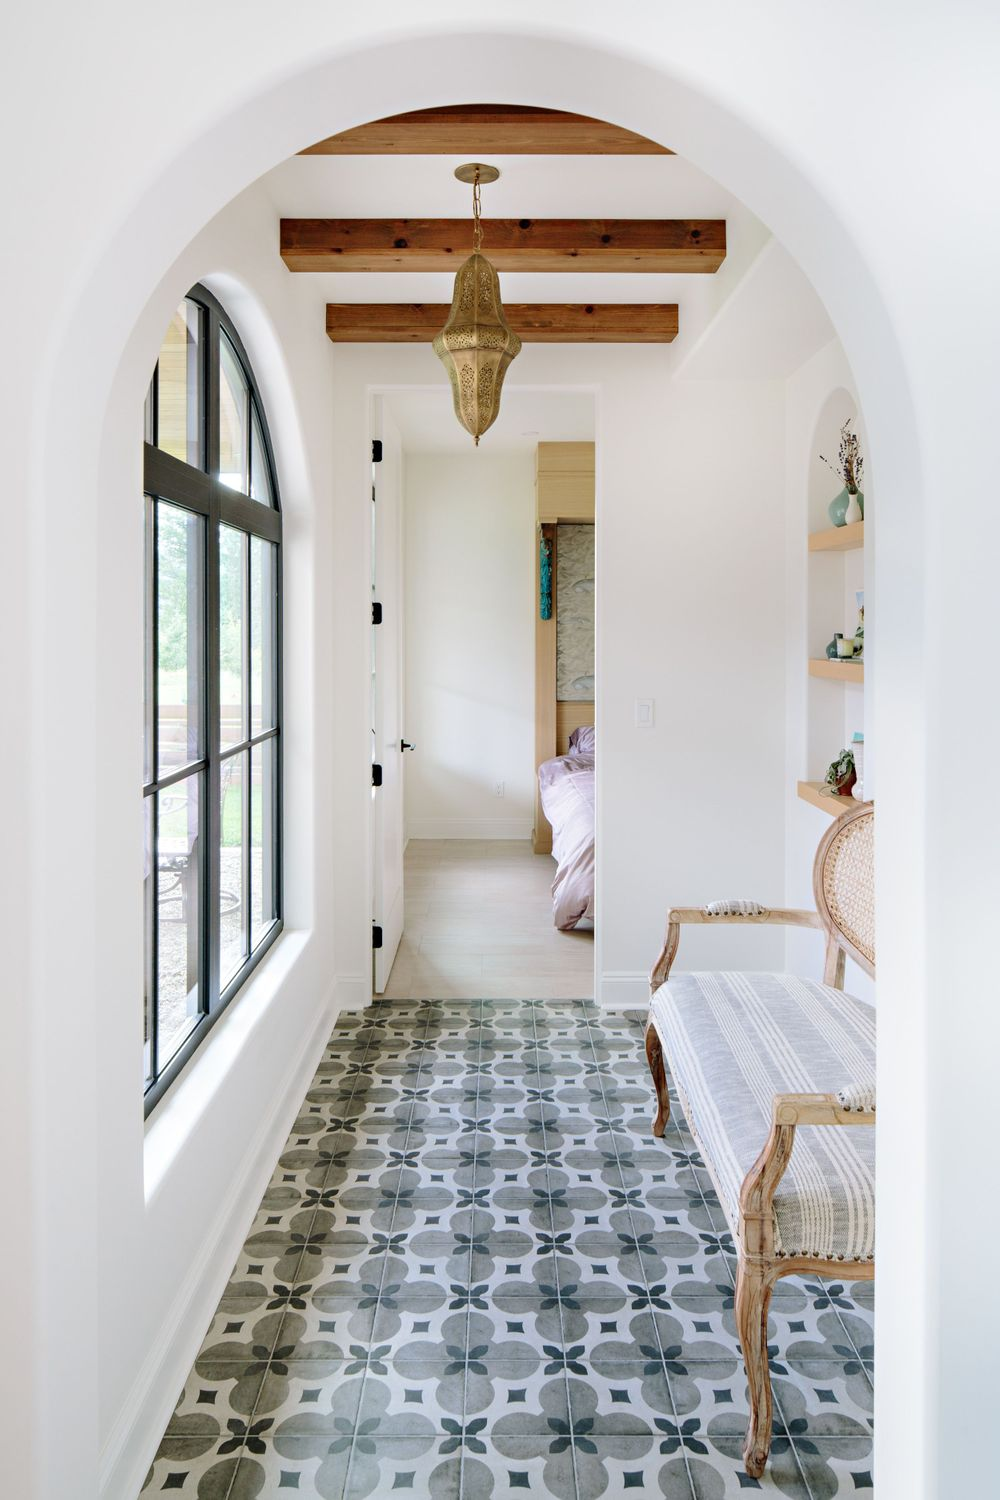 arched doorway with mosaic tile floor